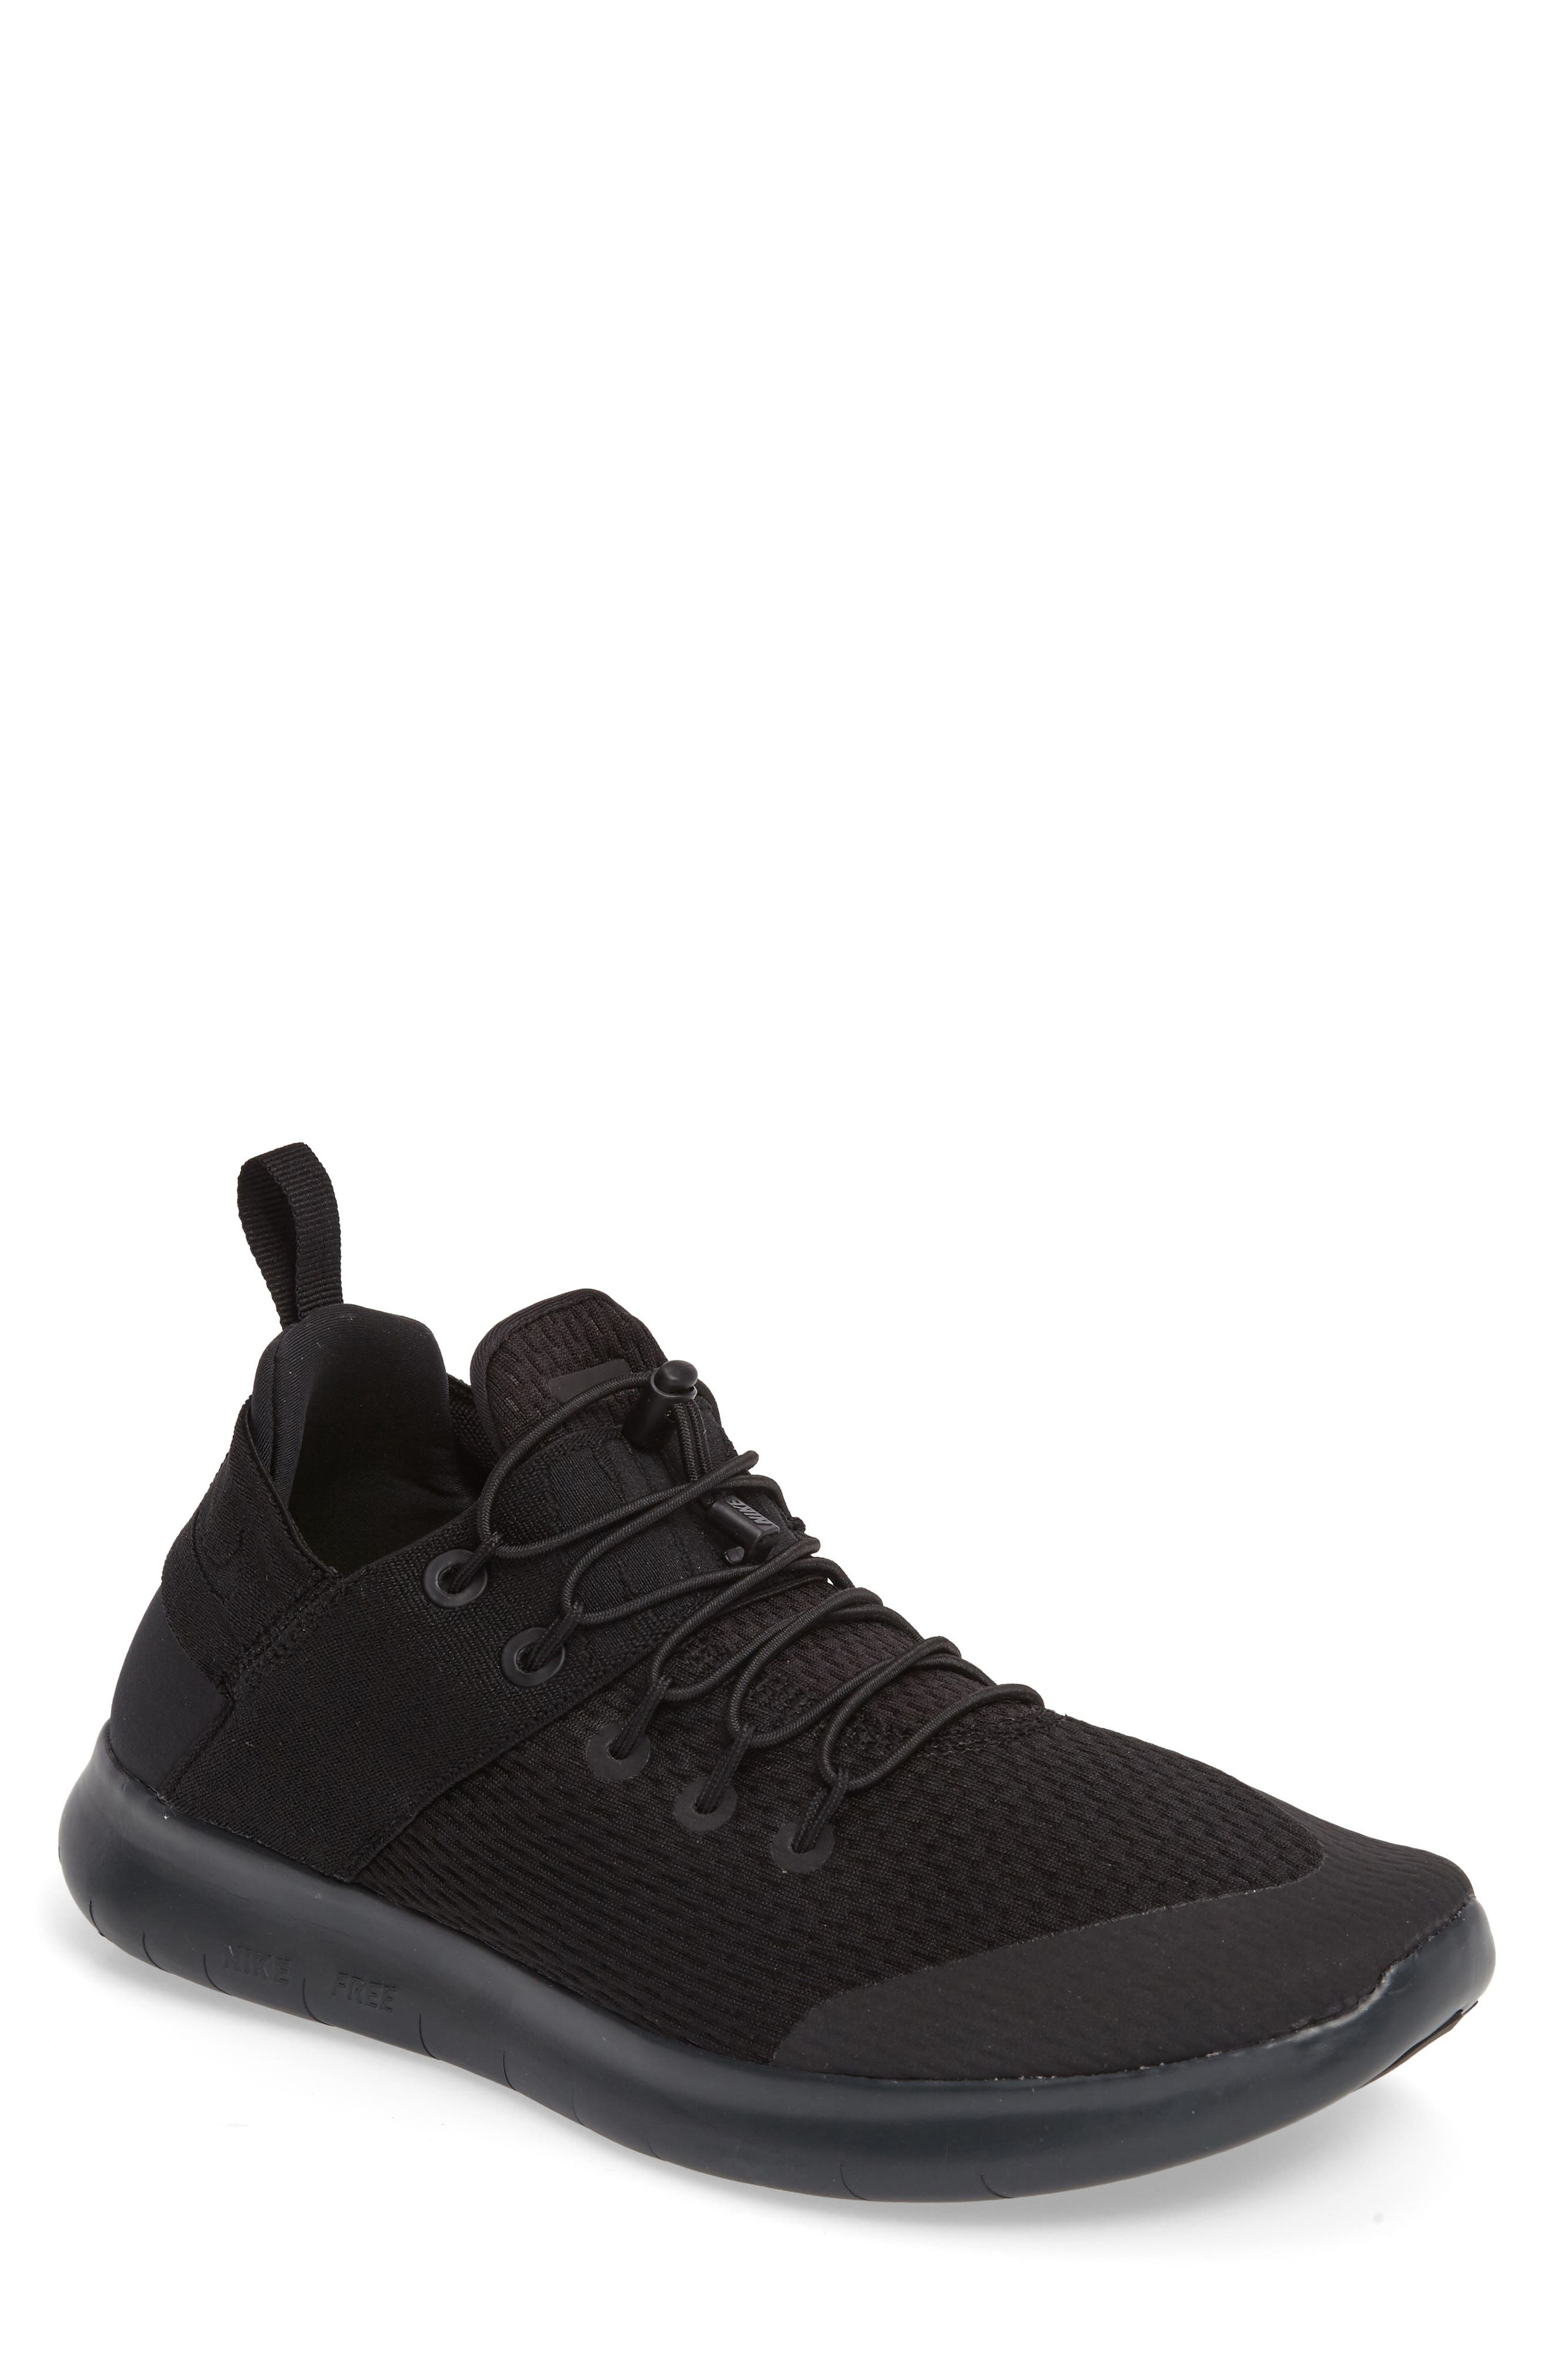 Nike Free RN CMTR 2 Running Shoe (Men)